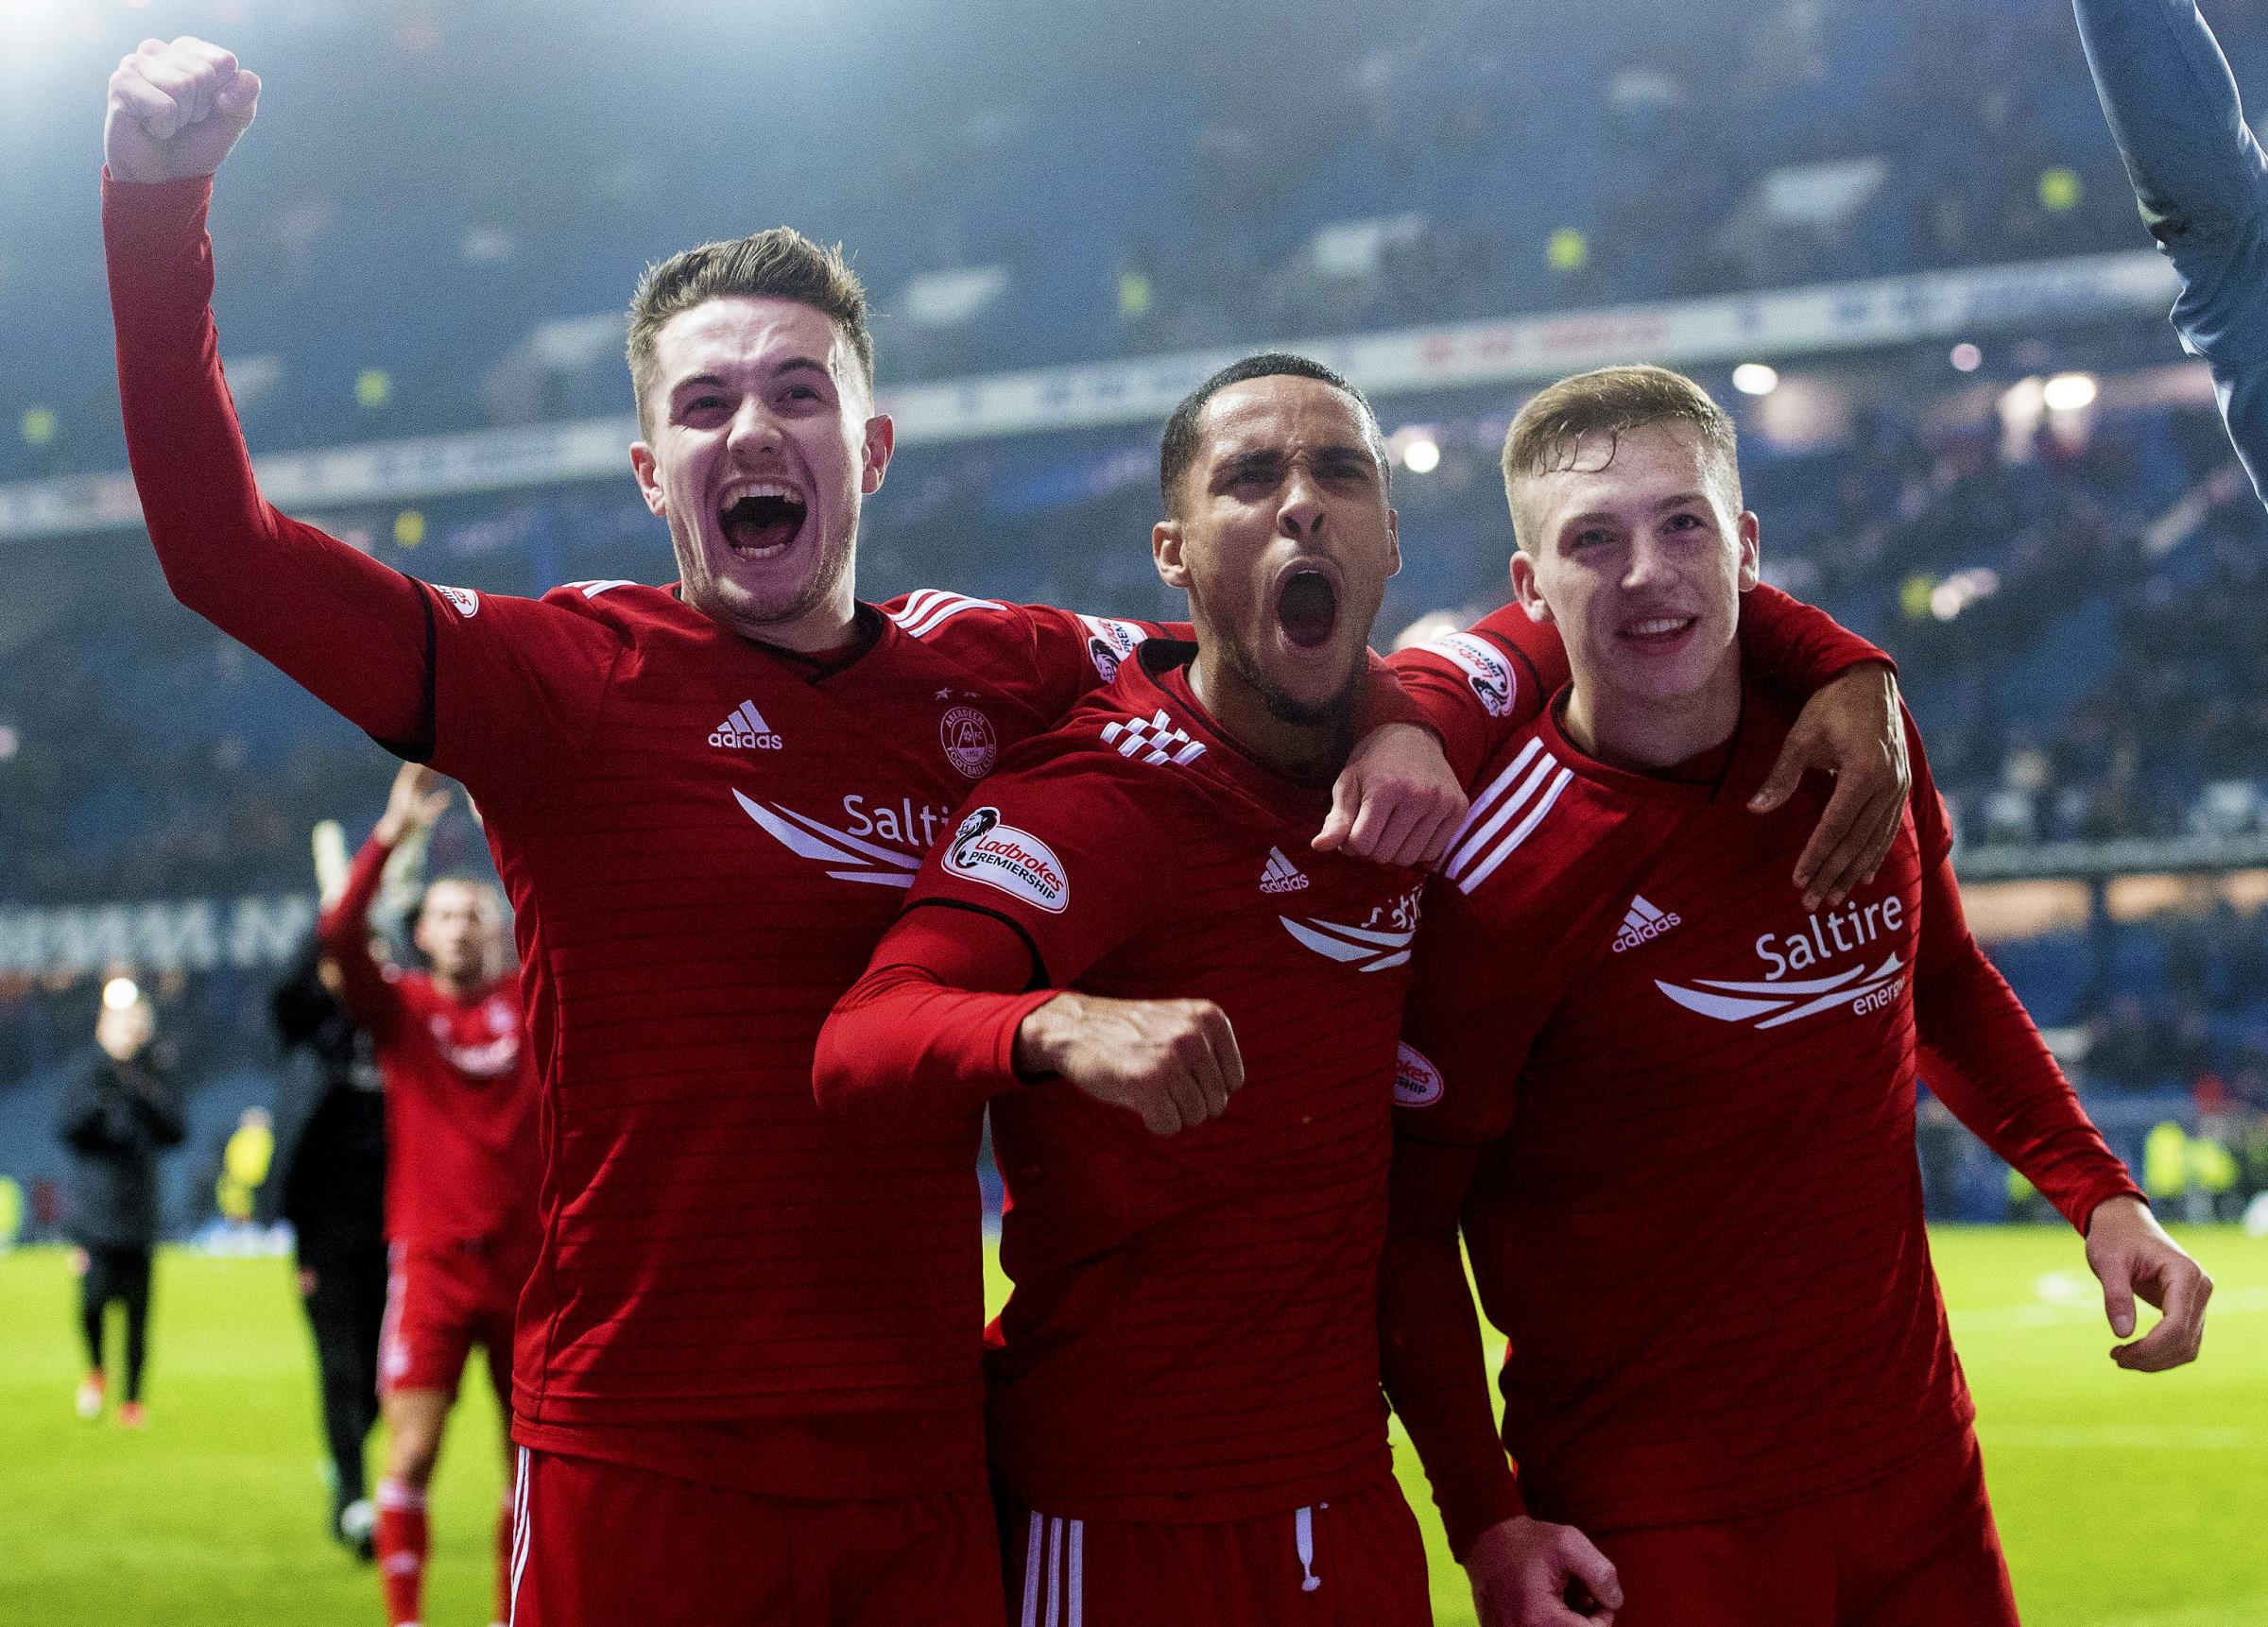 05/12/18 LADBROKES PREMIERSHIP.RANGERS v ABERDEEN (0-1).IBROX - GLASGOW.Aberdeen's Scott Wright, Max Lowe and Lewis Ferguson celebrate at full time.